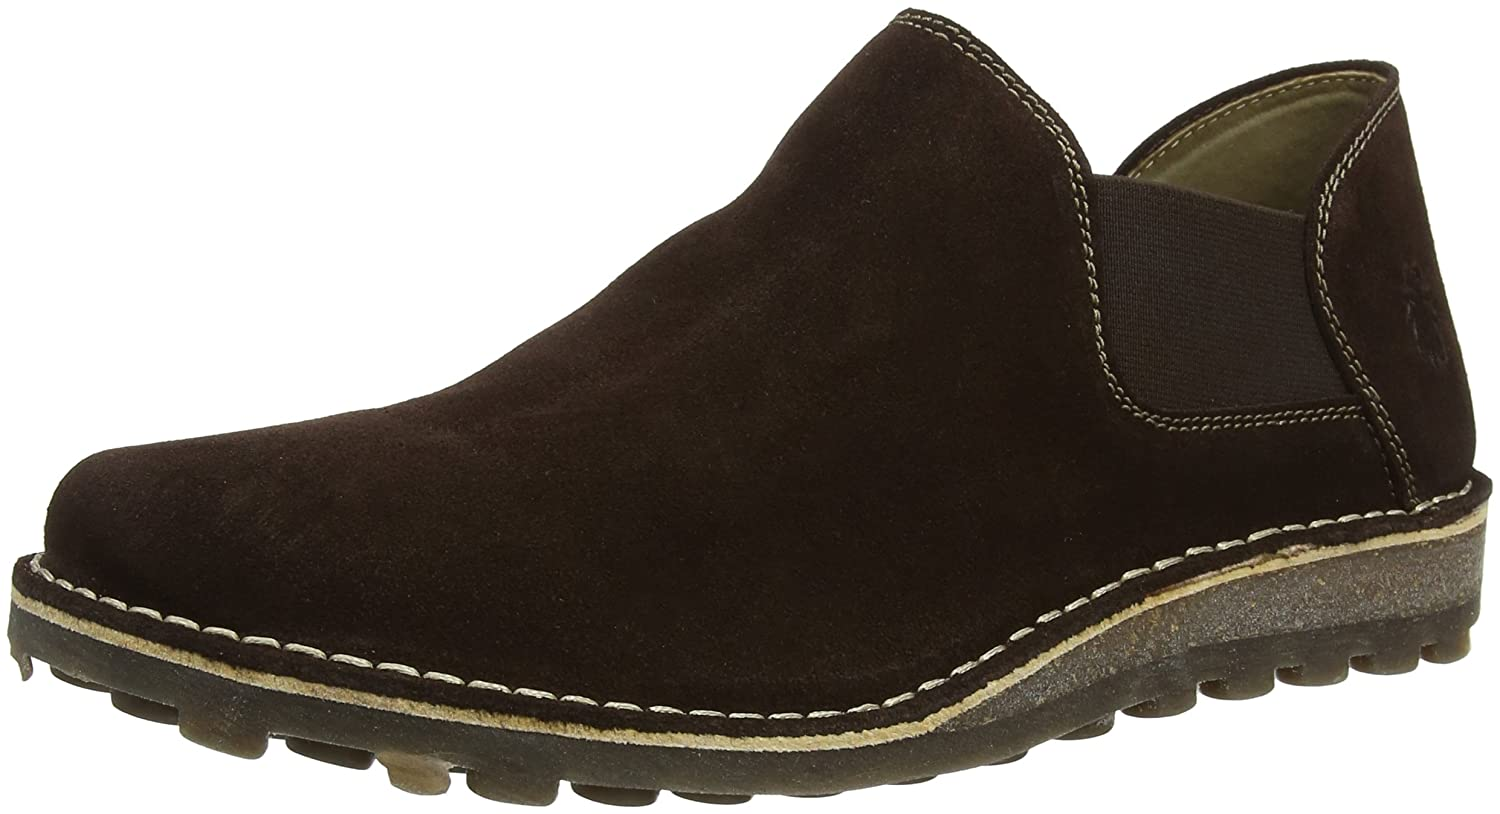 Fly London Mozo961fly, Mocasines para Hombre 45 EU|Marrón (Expresso)